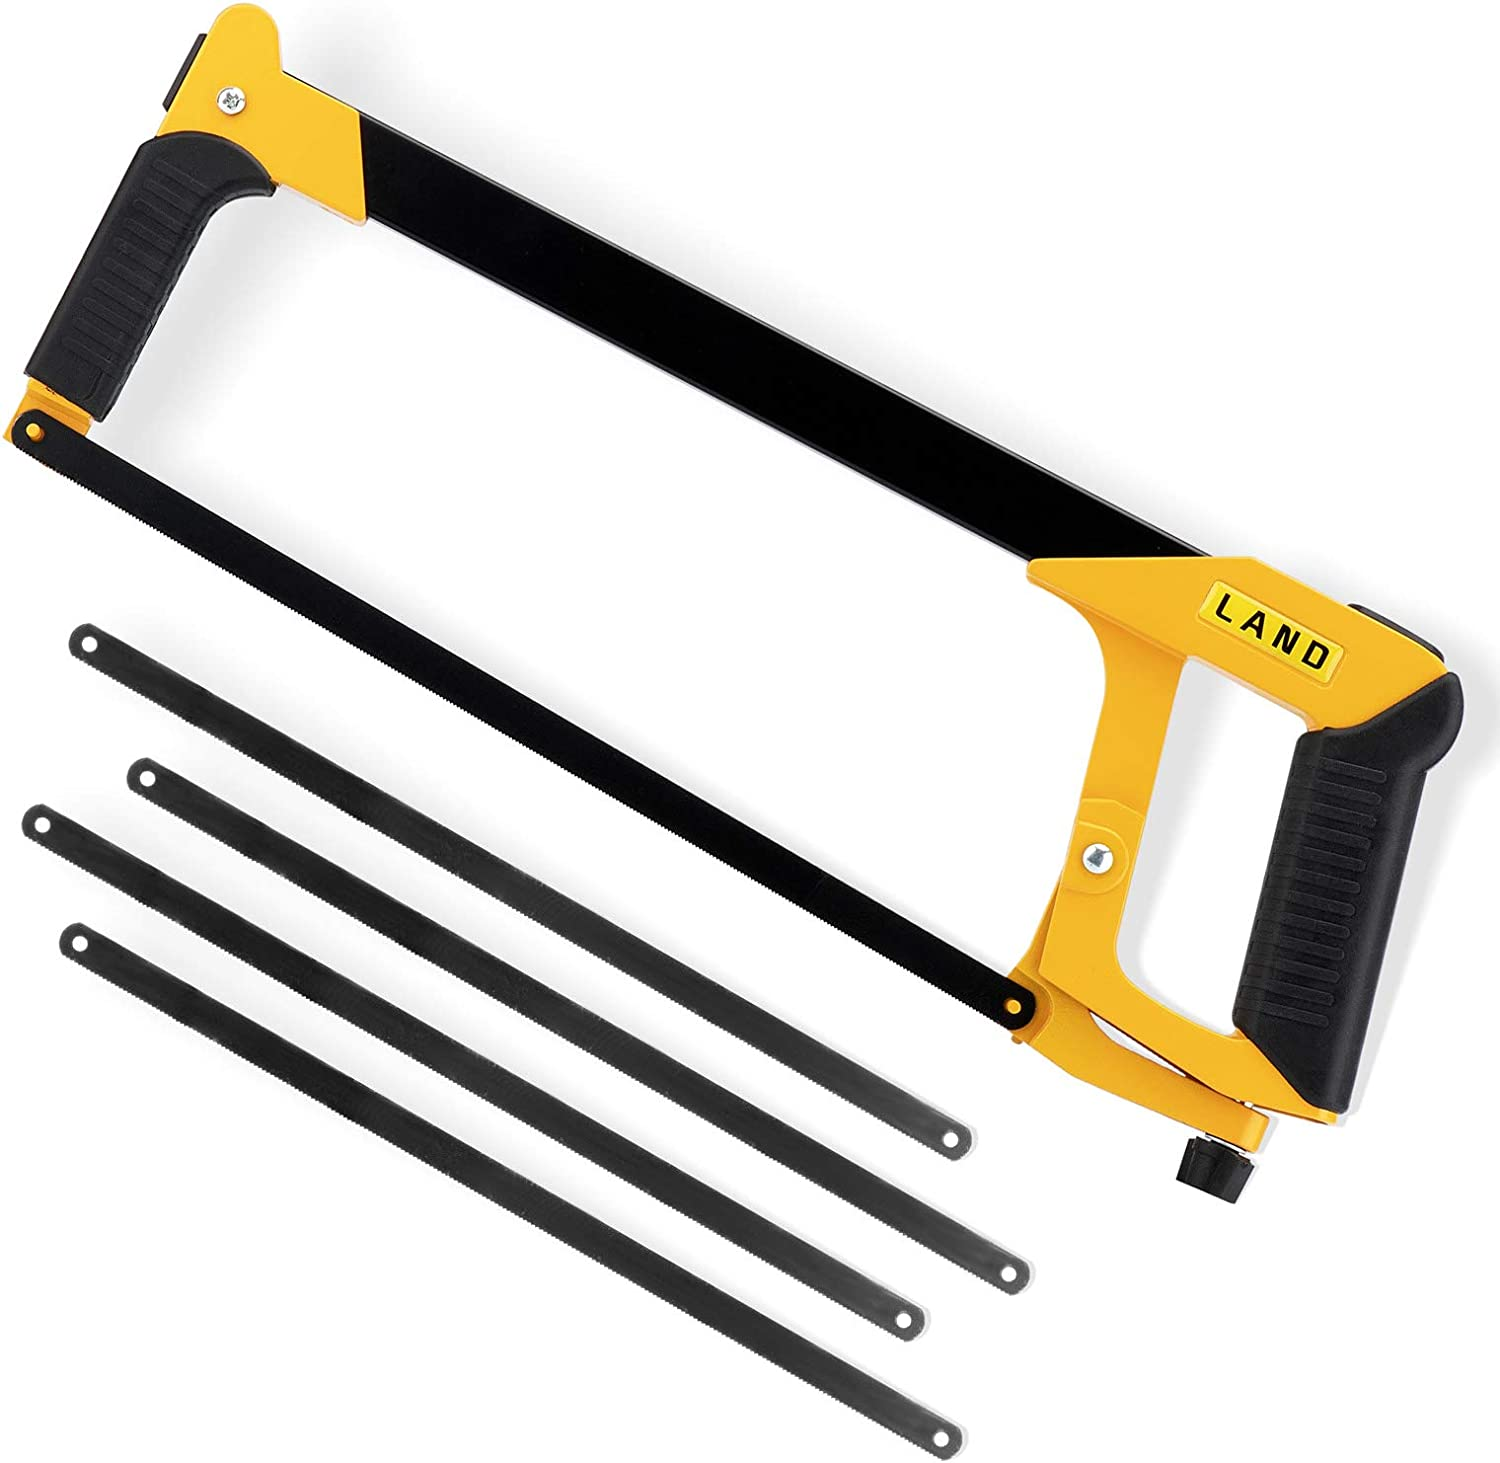 LAND 12 Soldering 35% OFF Inch Hacksaw - Heavy Duty Extra Coping High-C Saw 4 with